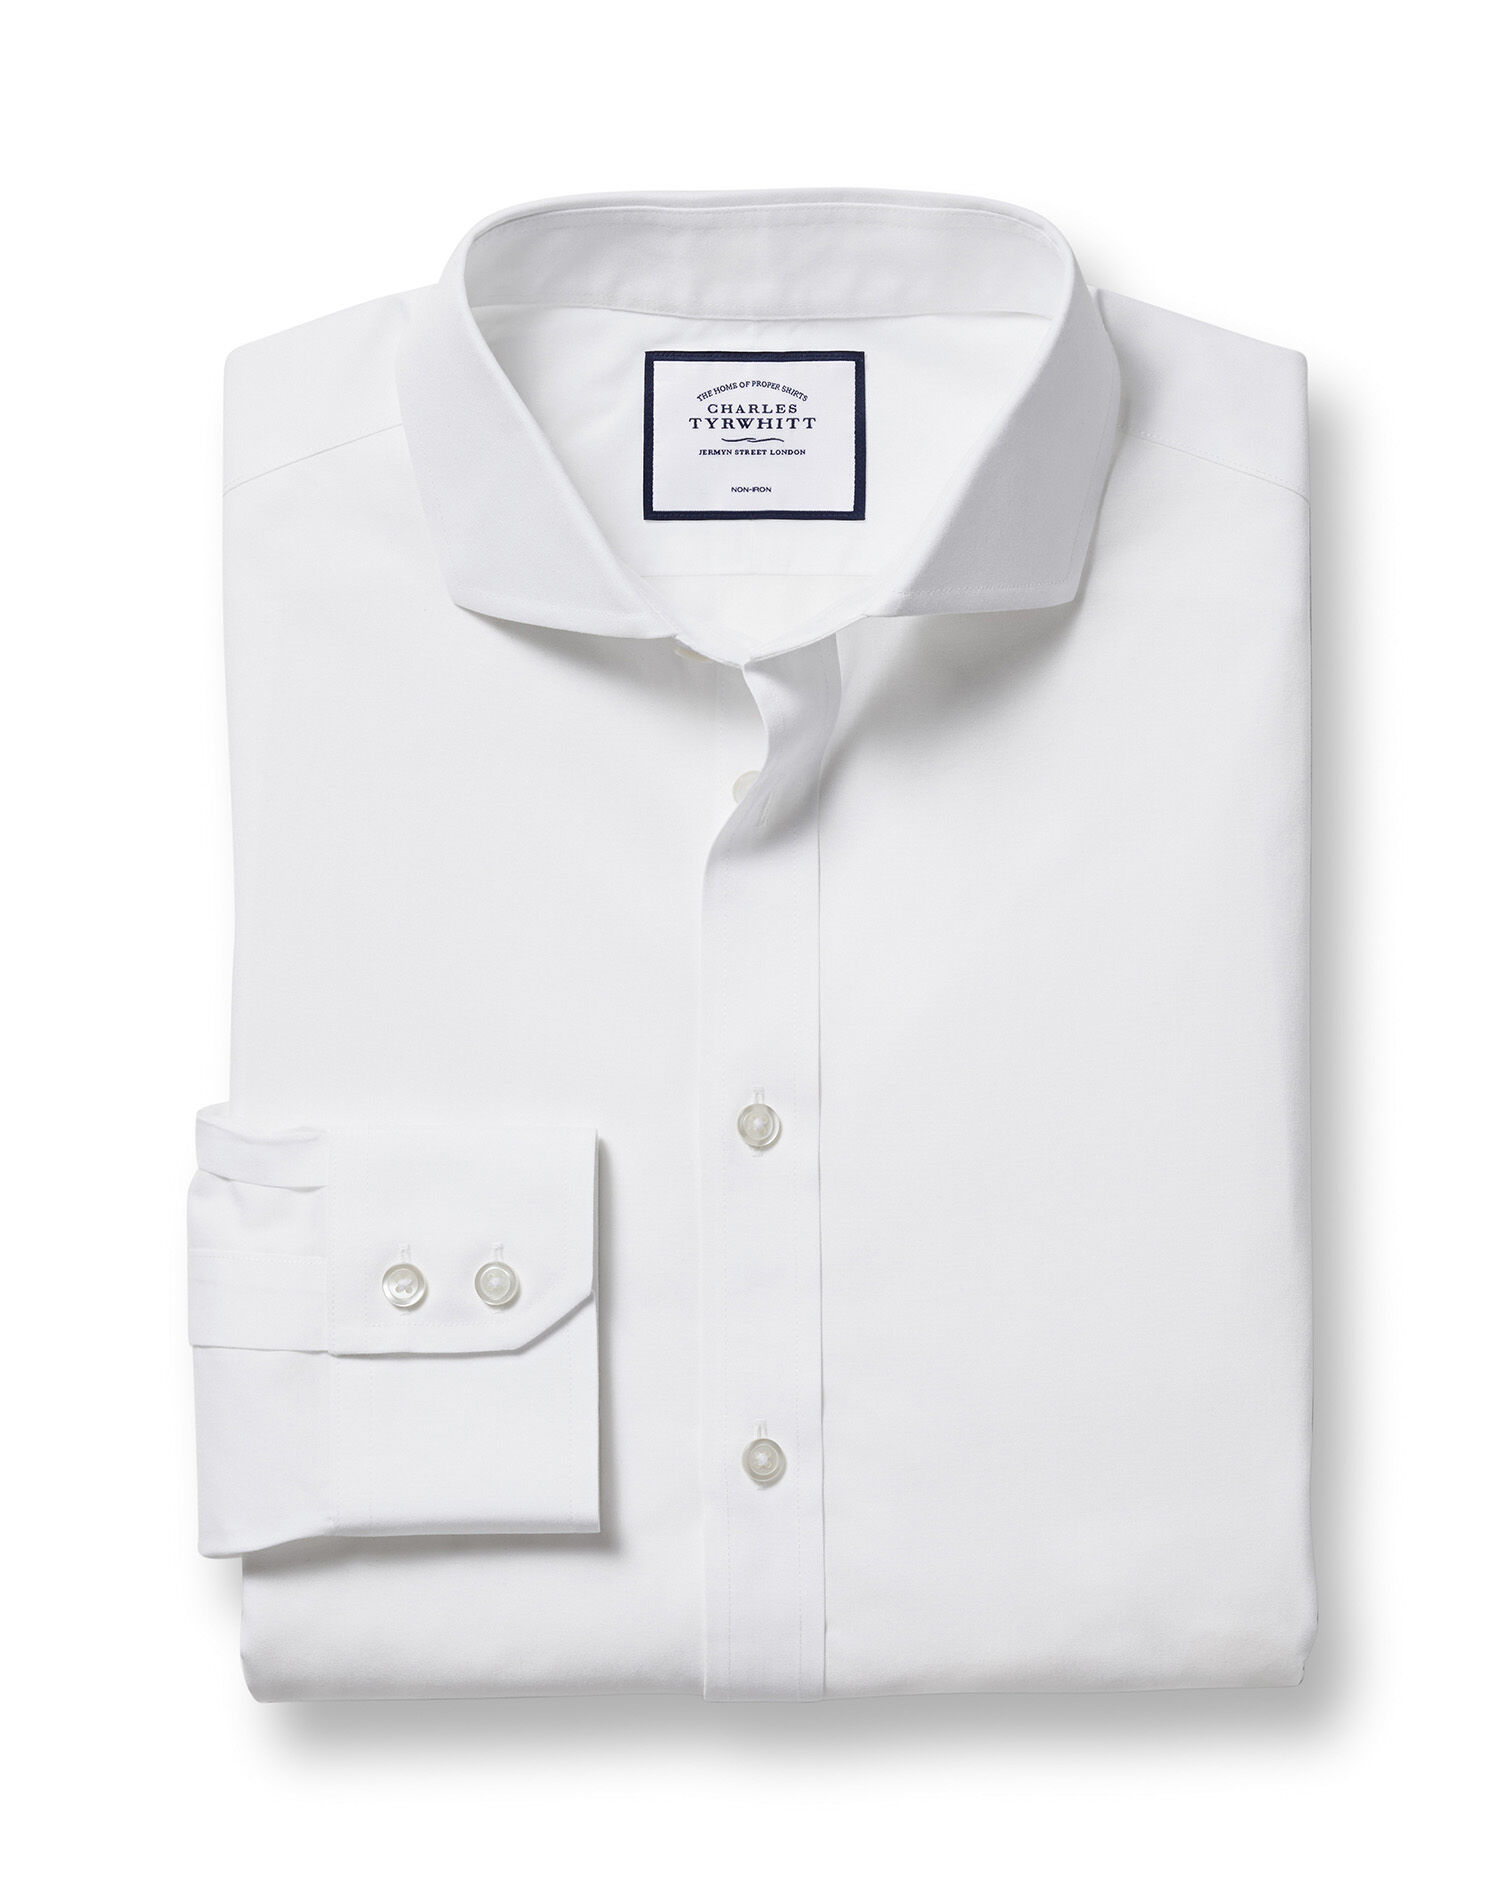 Slim Fit Cutaway Non-Iron Poplin White Cotton Formal Shirt Single Cuff Size 14.5/33 by Charles Tyrwh